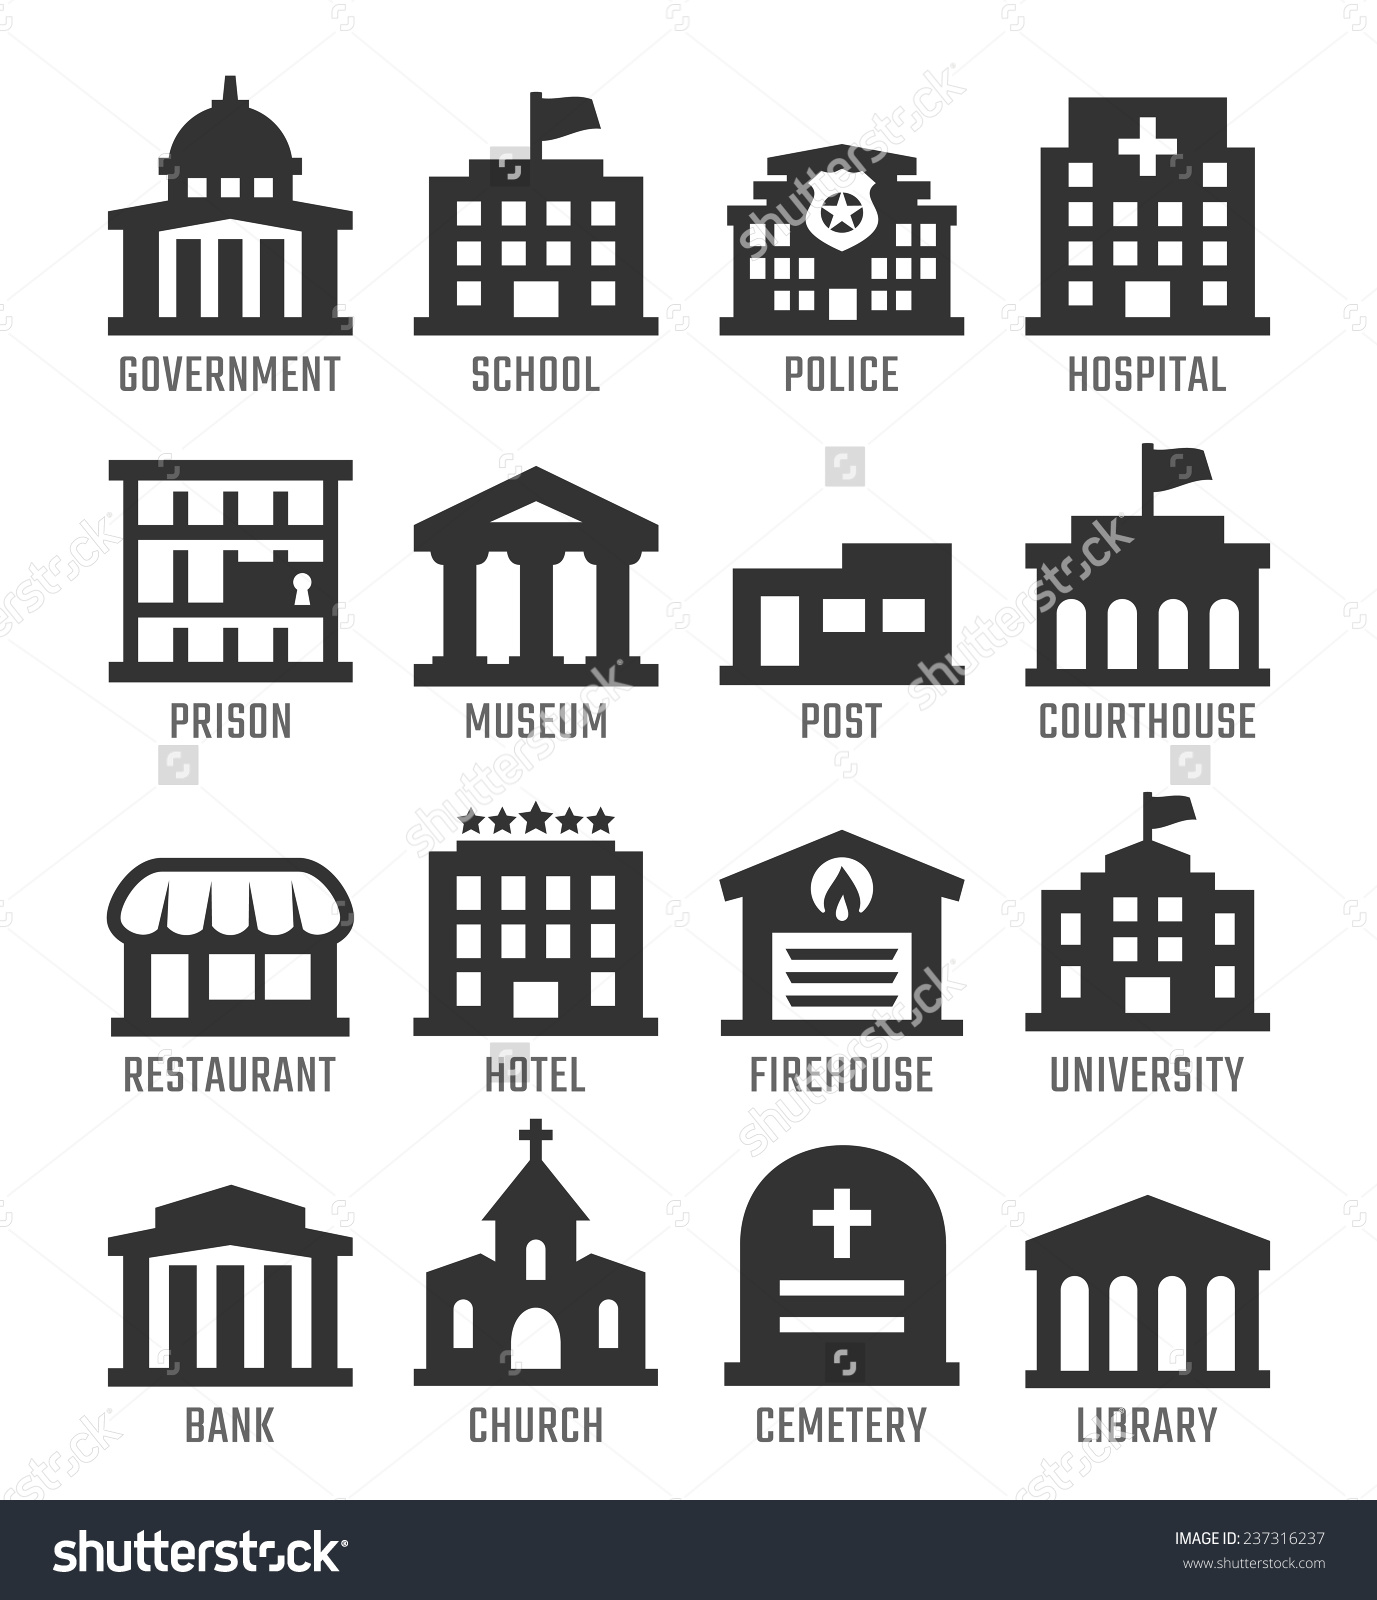 Government building collection . Buildings clipart vector